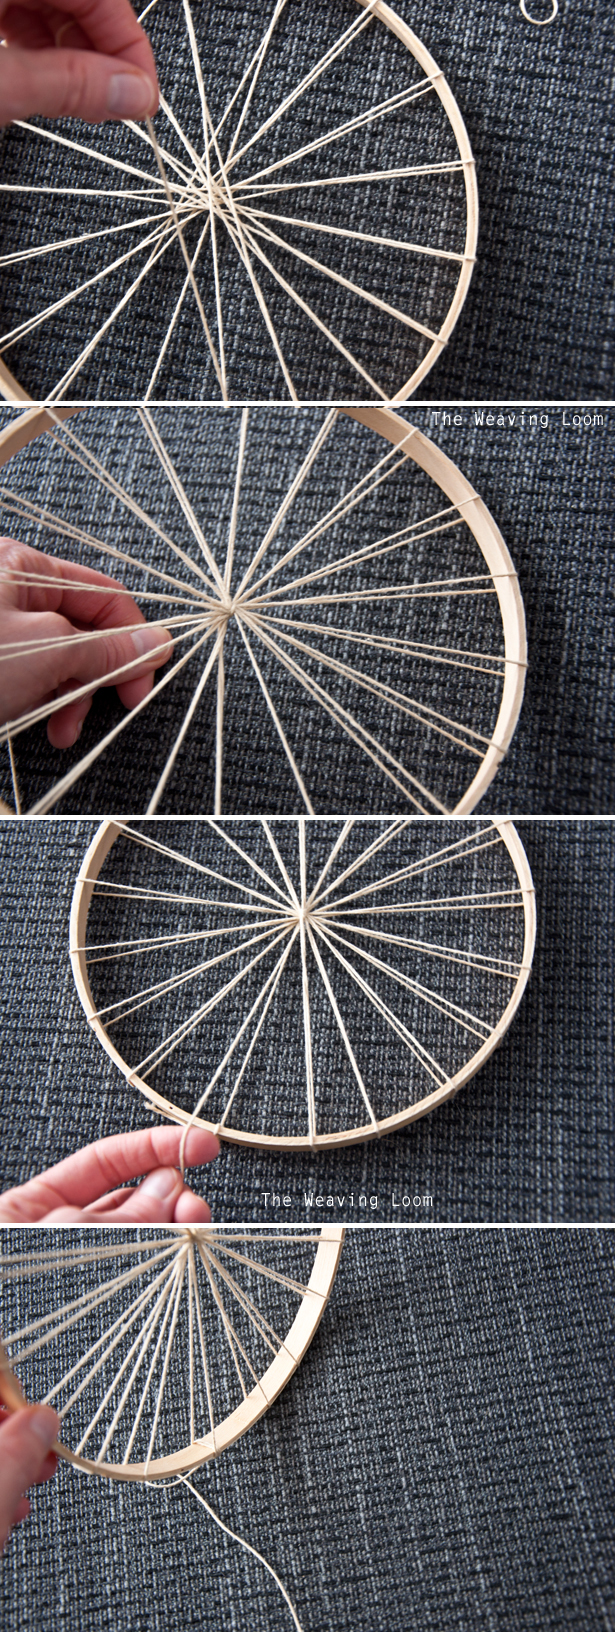 How to use an embroidery hoop as a loom